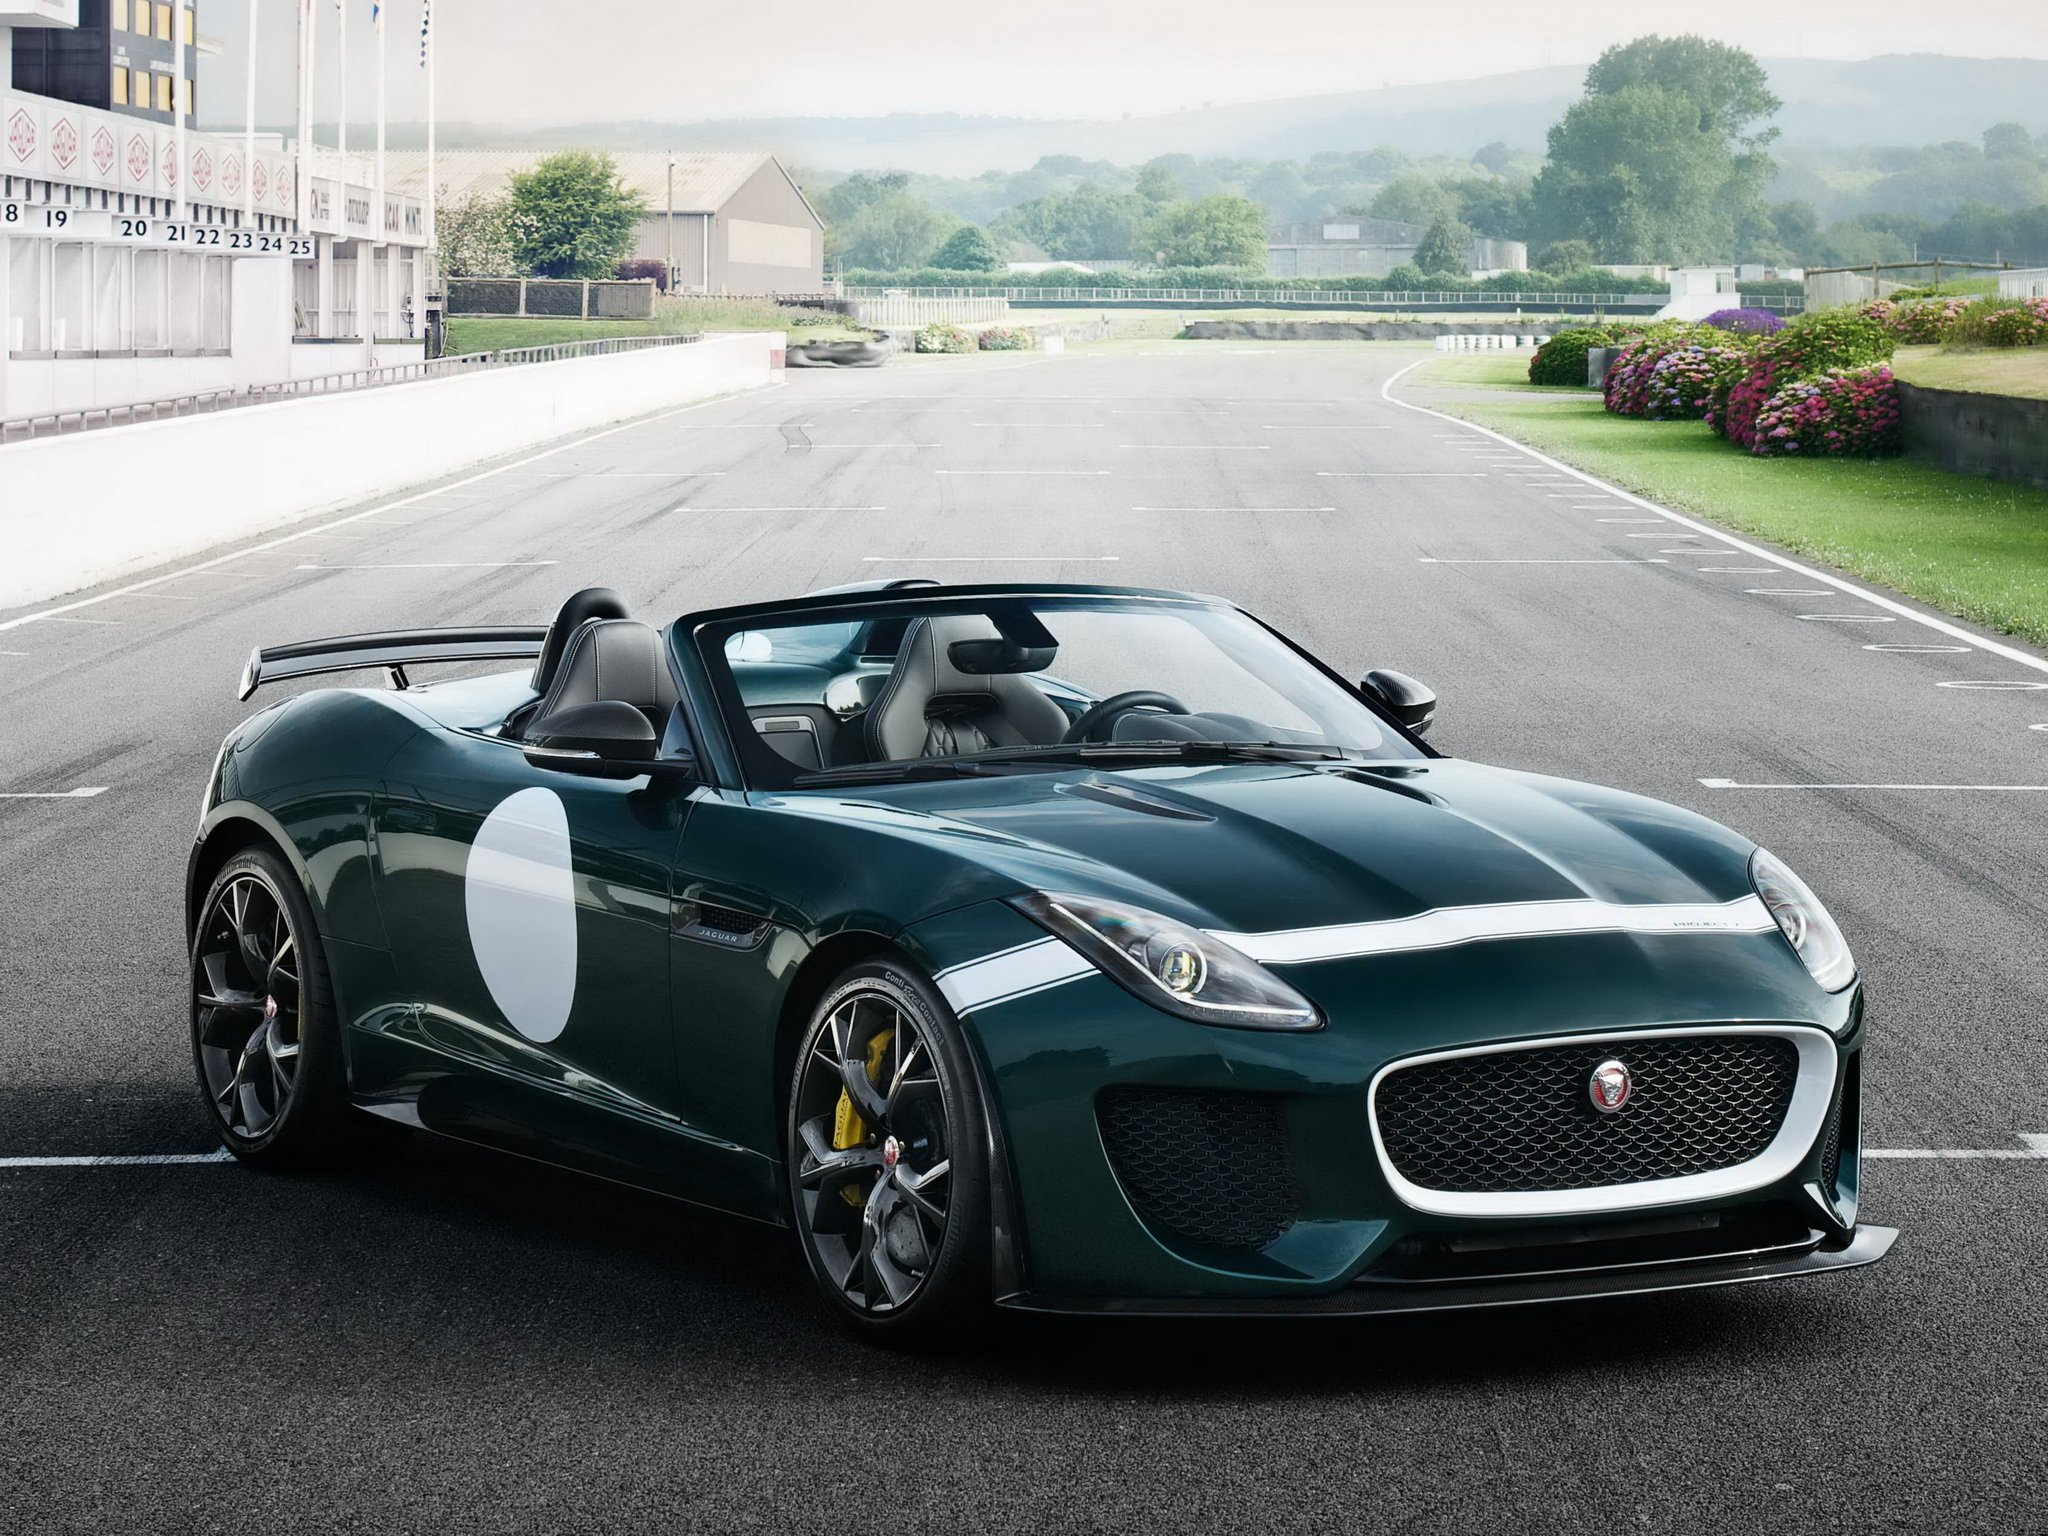 2014 jaguar f type project 7 tuning race racing r. Black Bedroom Furniture Sets. Home Design Ideas